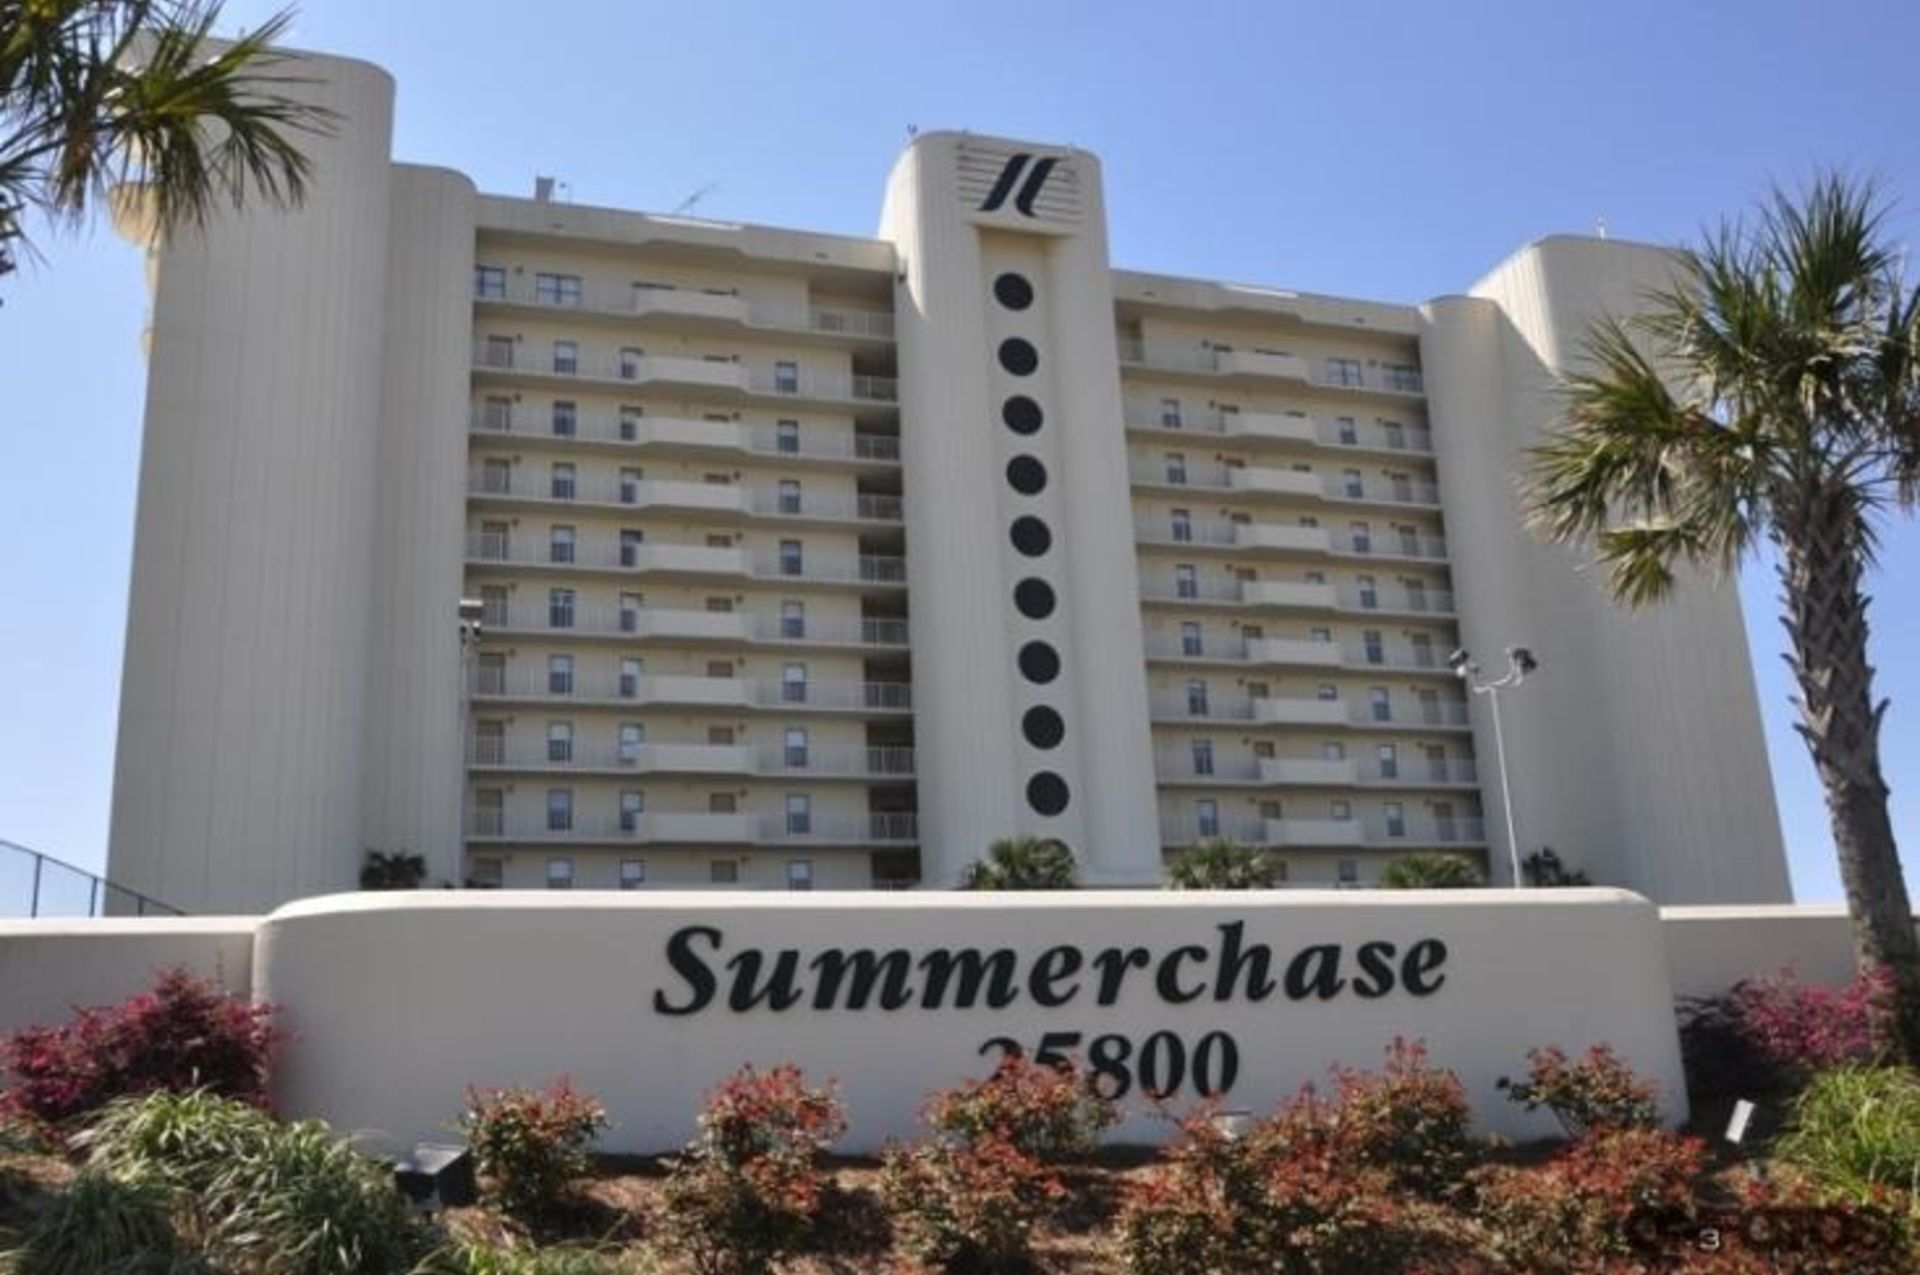 Orange Beach Condos from $400,000 to $500,000